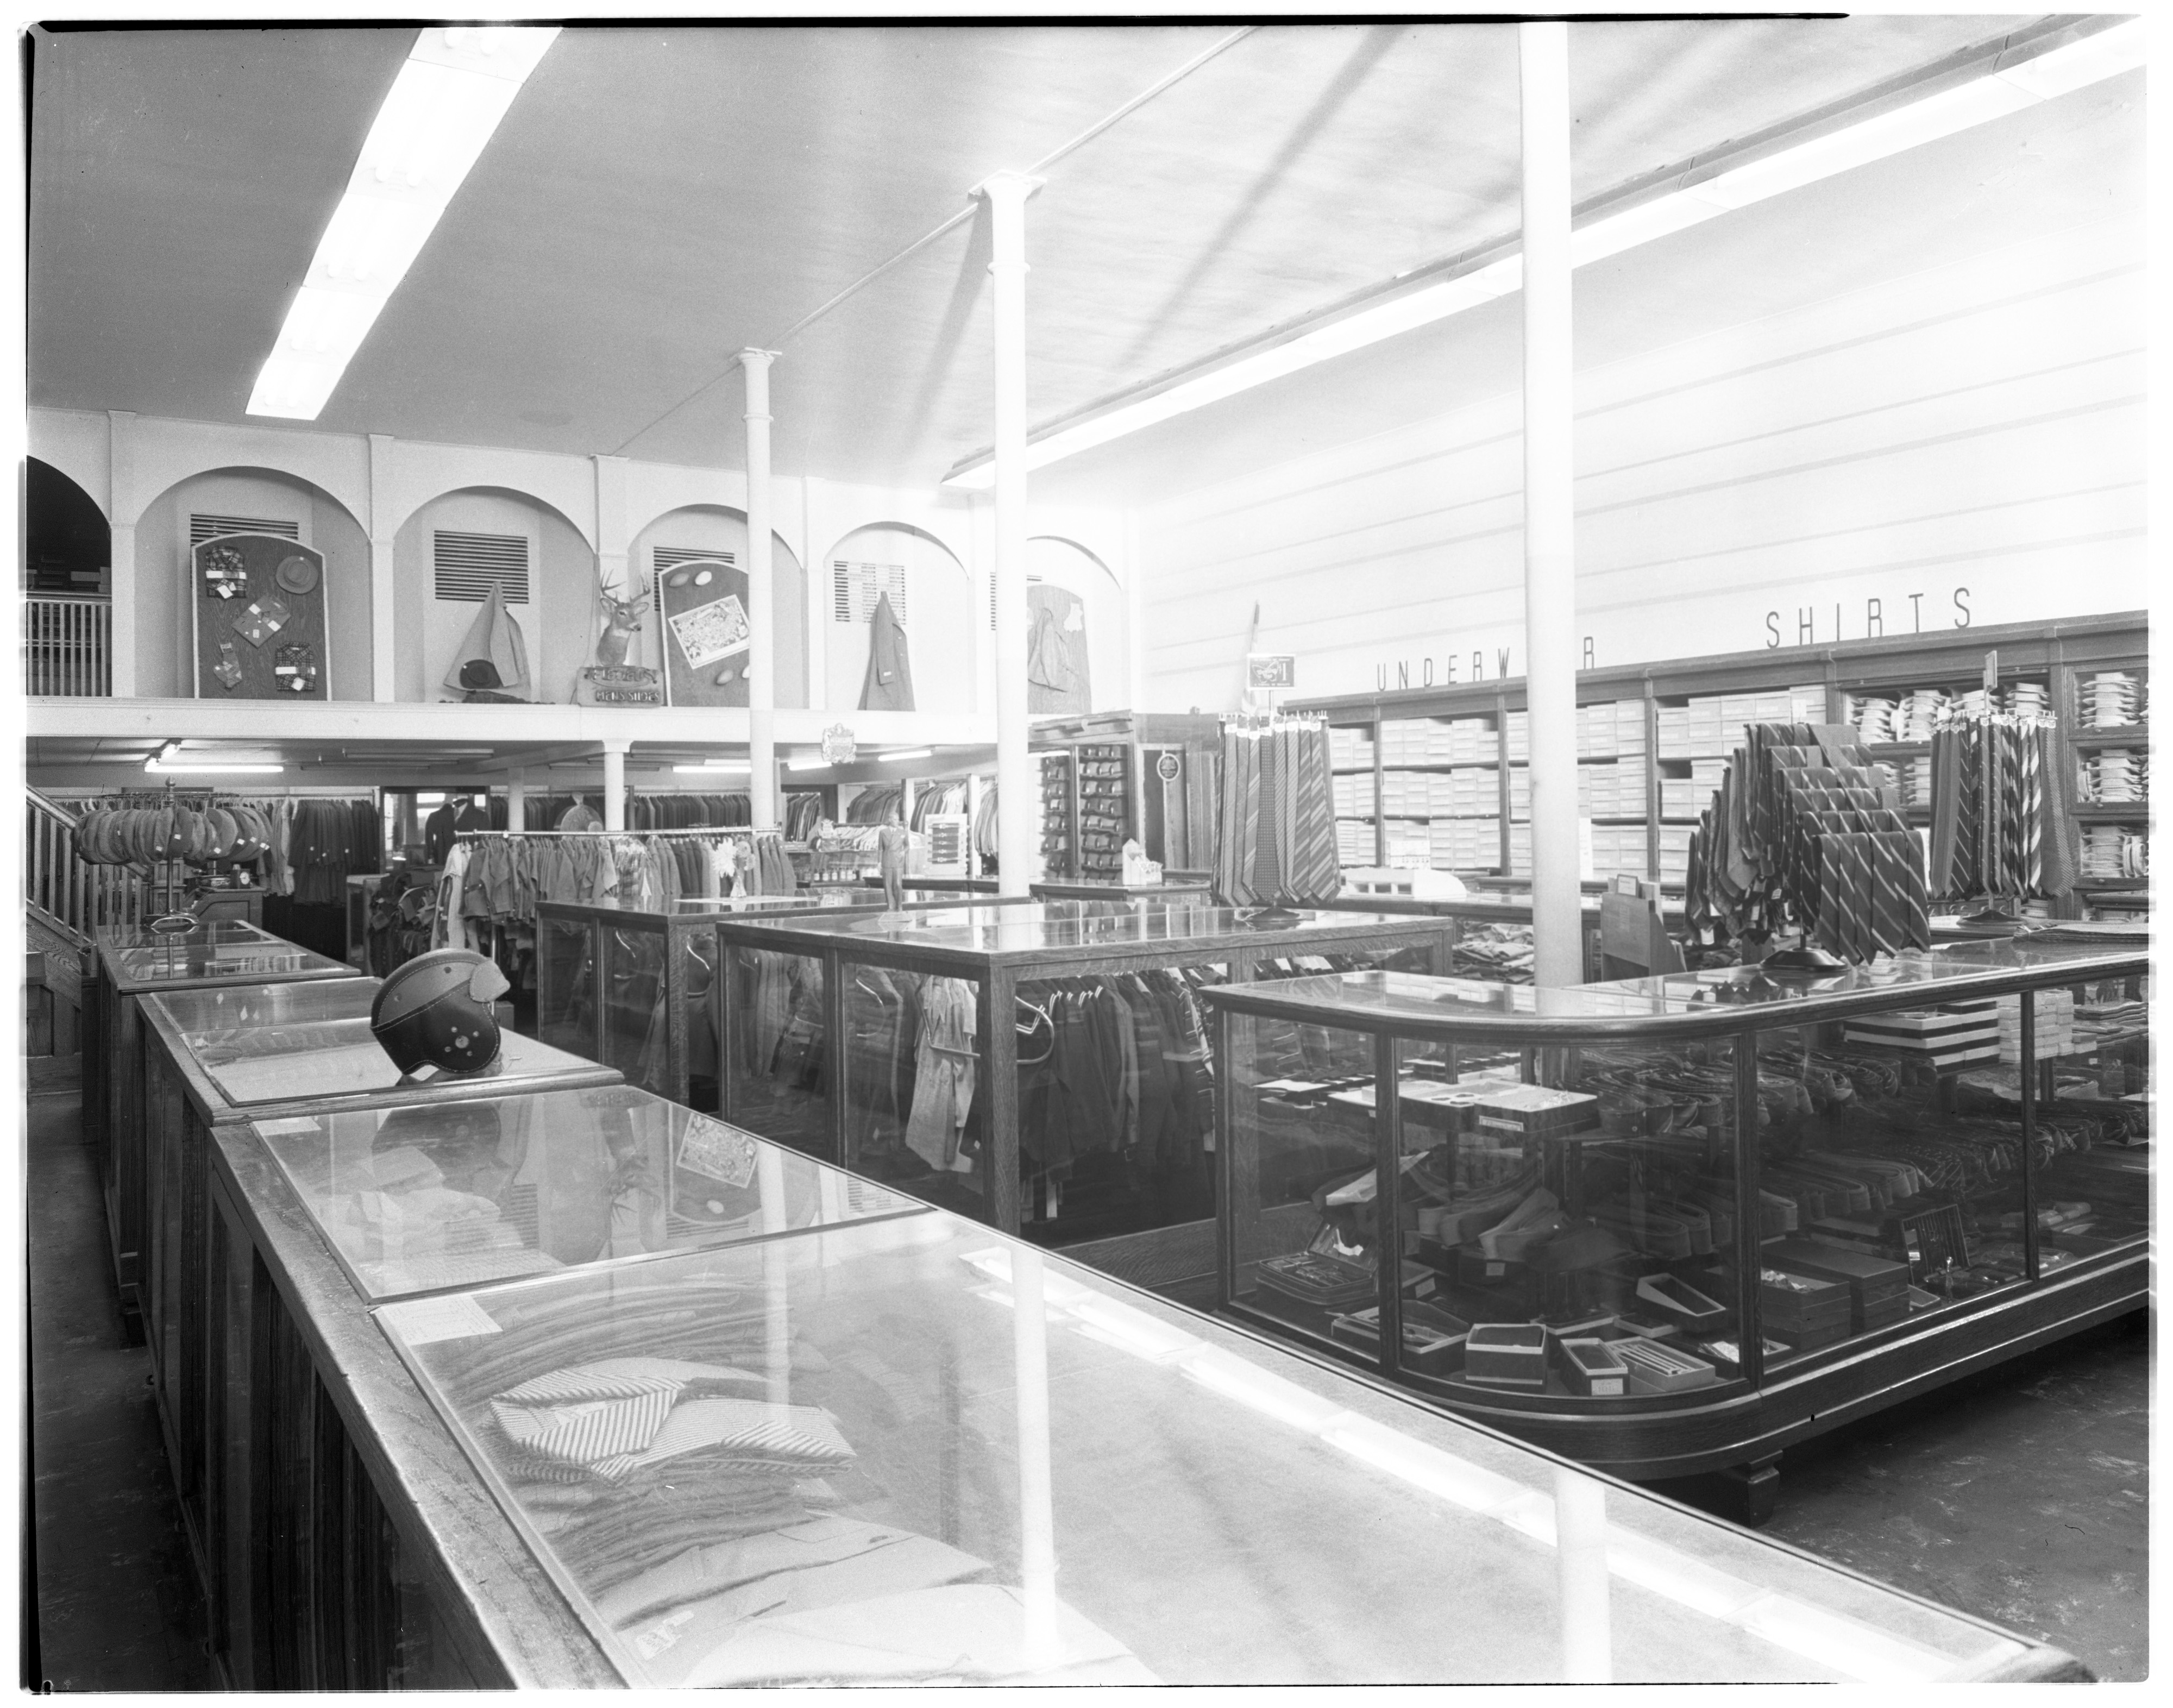 Interior of Fiegel's Department Store at 50th Anniversary, September 1941 image